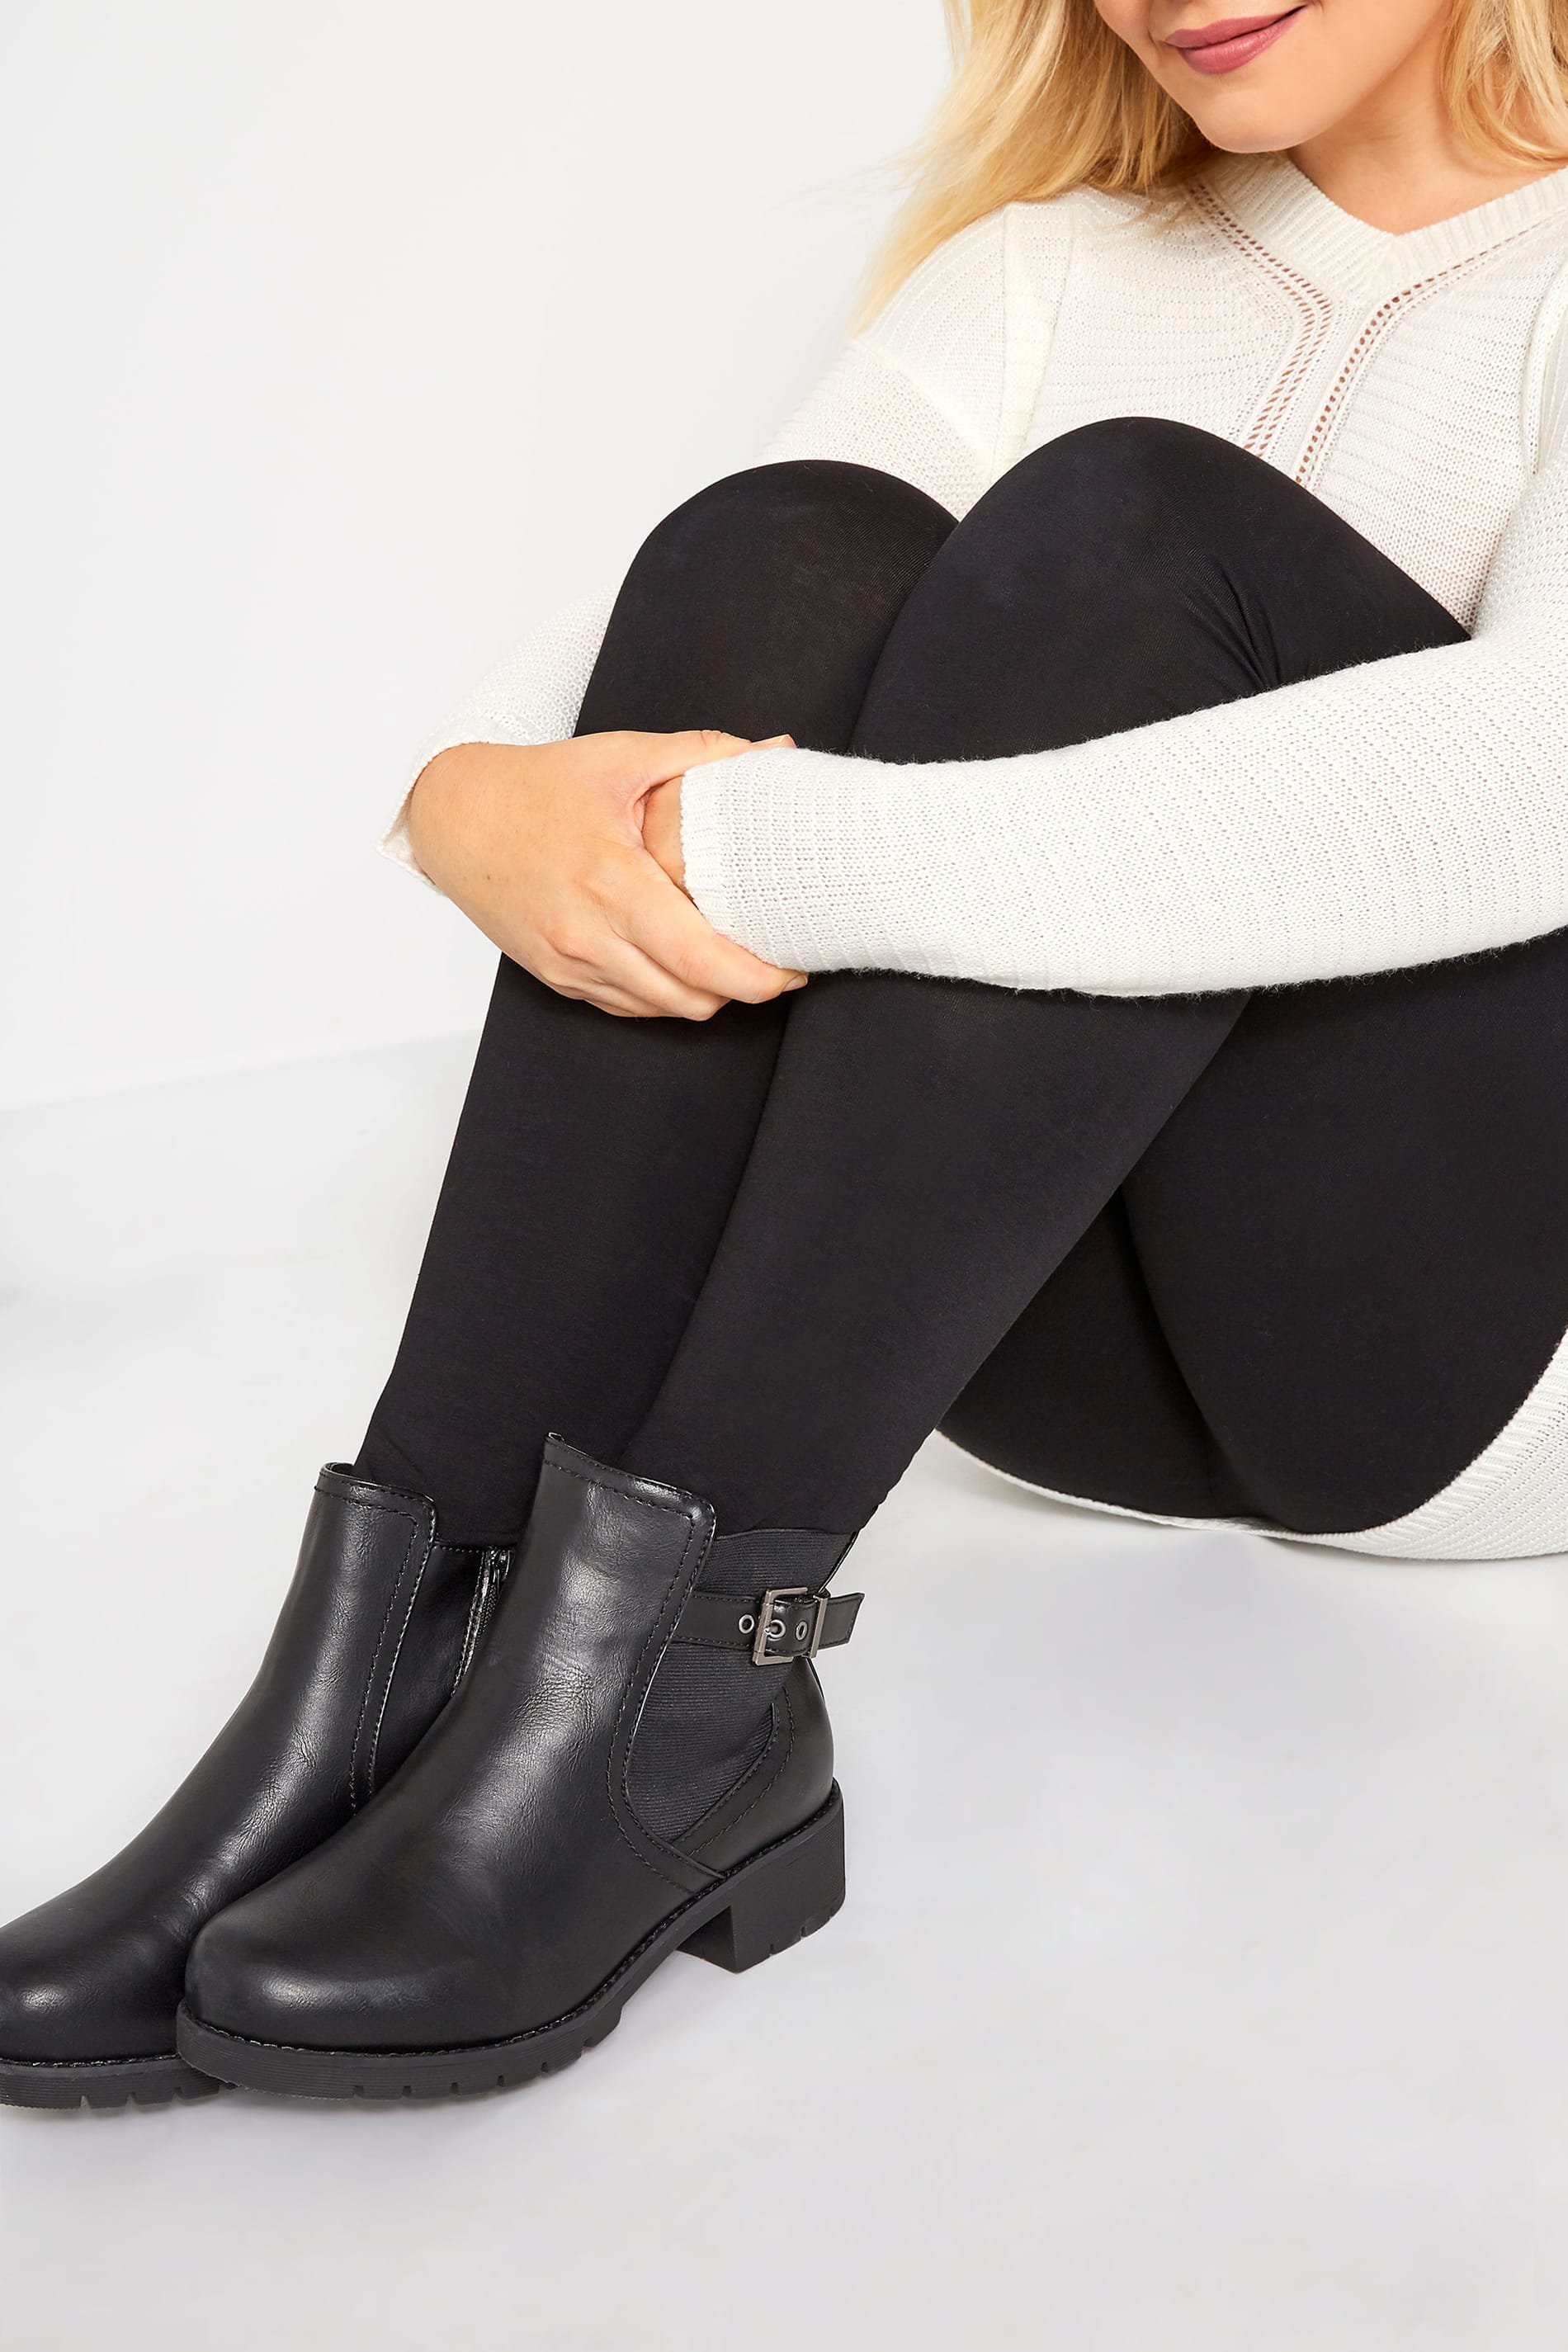 Black Chelsea Buckle Ankle Boots In Extra Wide Fit Yours Clothing